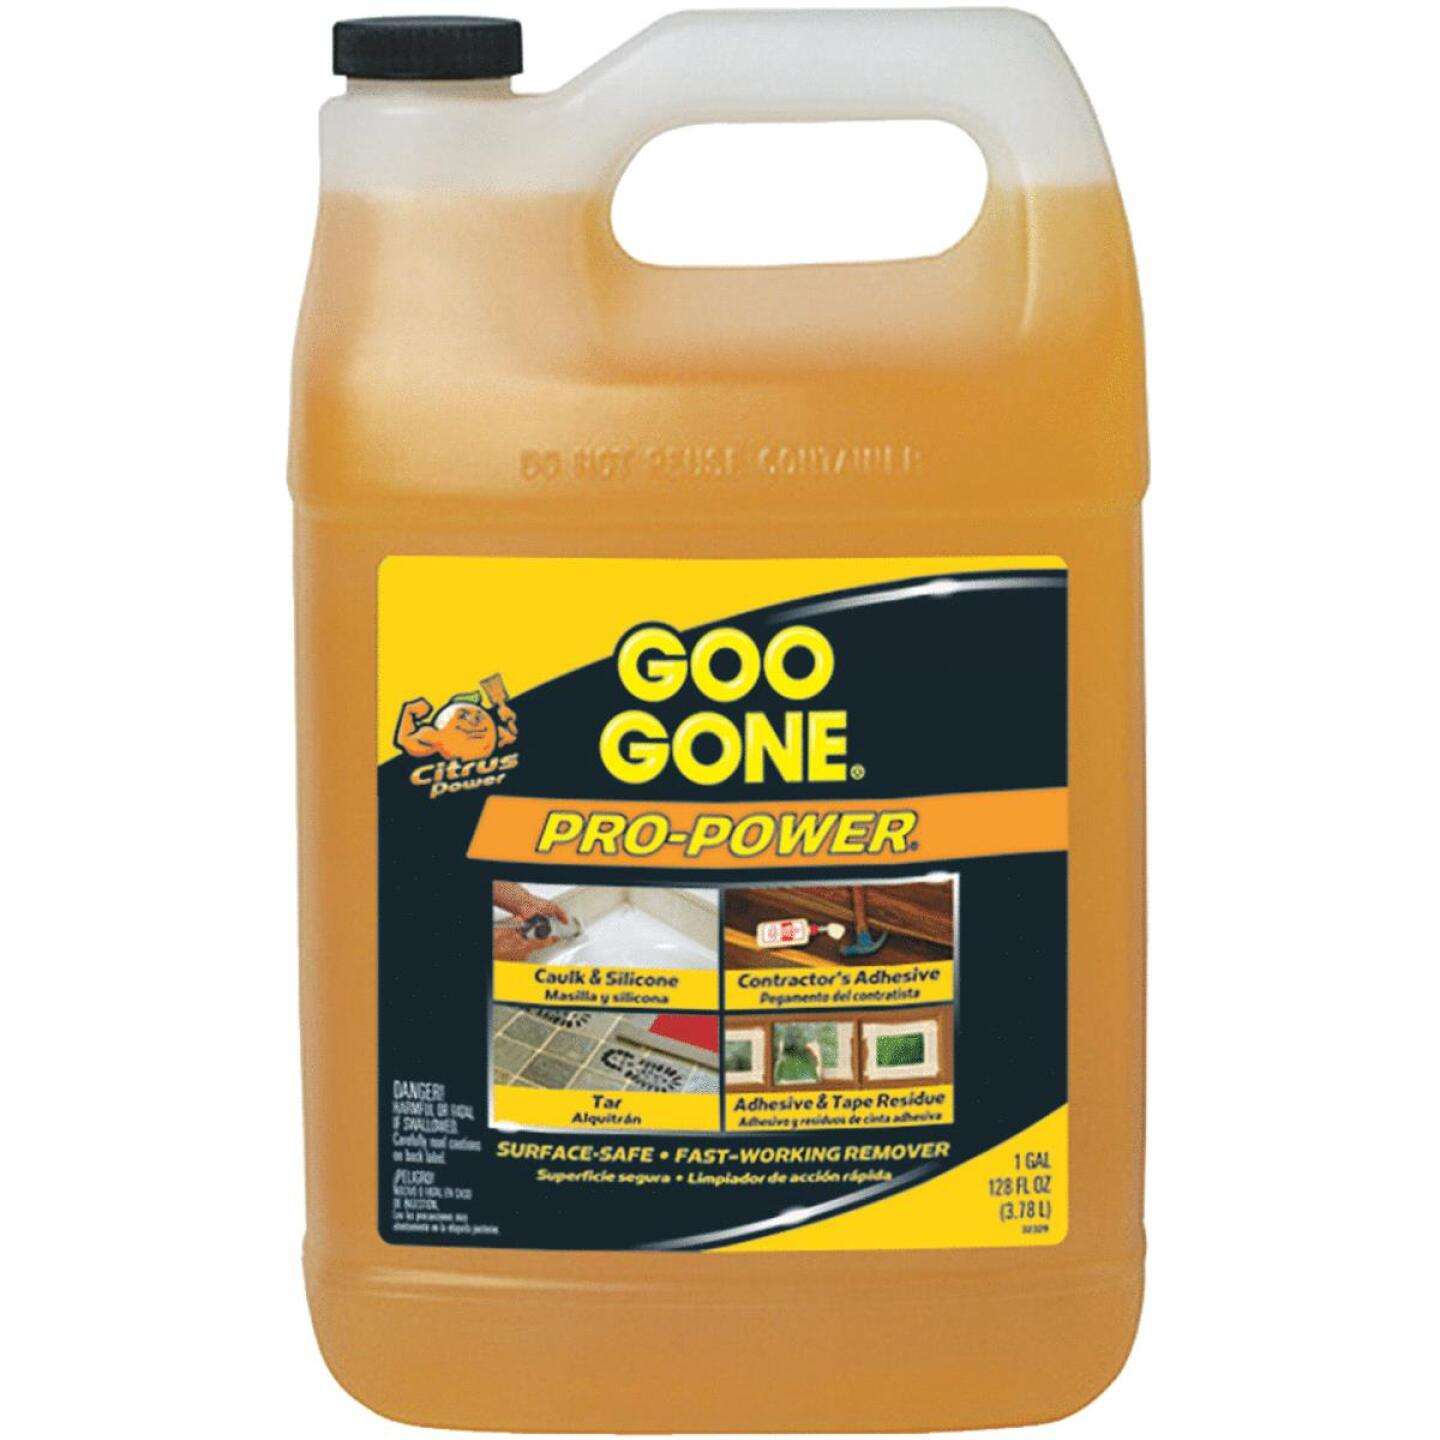 Goo Gone 1 Gal. Pro-Power Adhesive Remover Image 225